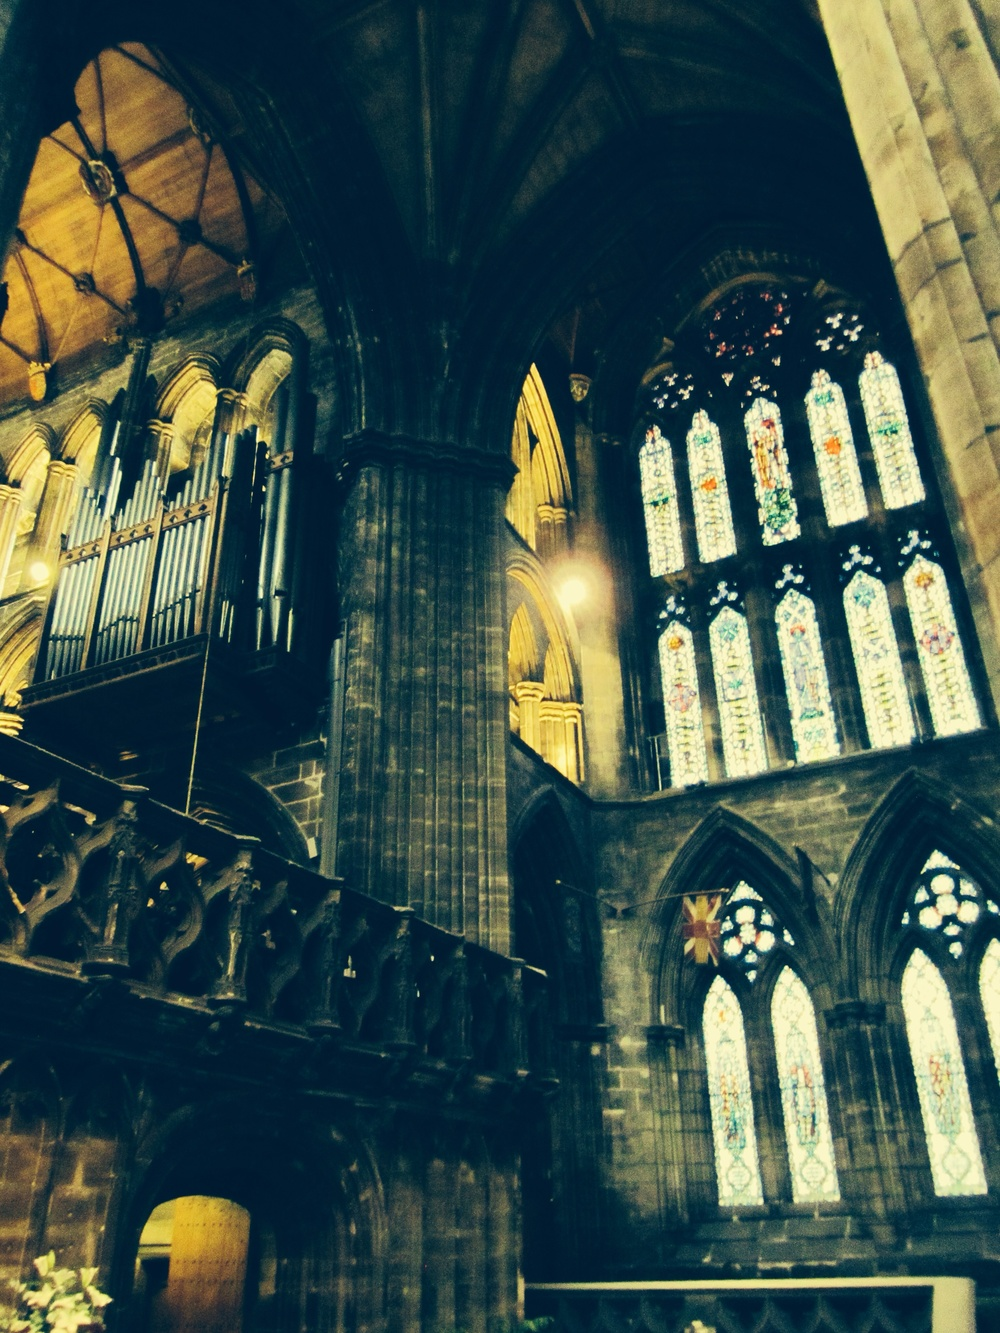 The Glasgow Cathedral was the only Scottish church to survive the Reformation intact. It's also called St Mungo's Cathedral. John Knox, father of the Protestant Reformation, is buried here.